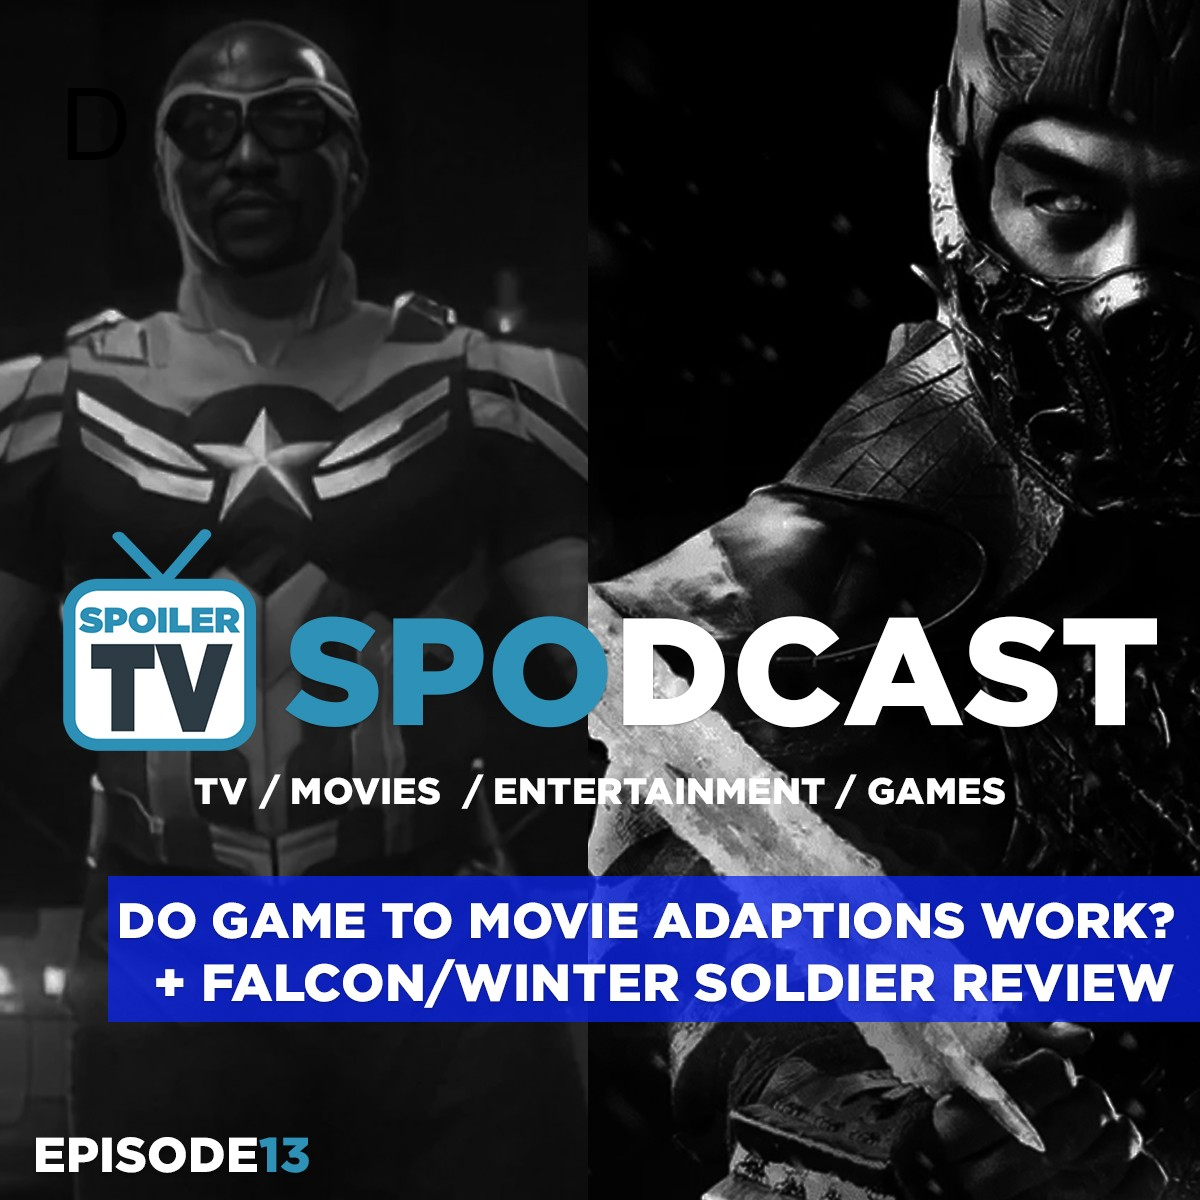 Do Game to Movie Adaptions work? + Falcon and Winter Soldier Season Review - SpoilerTV Spodcast 13